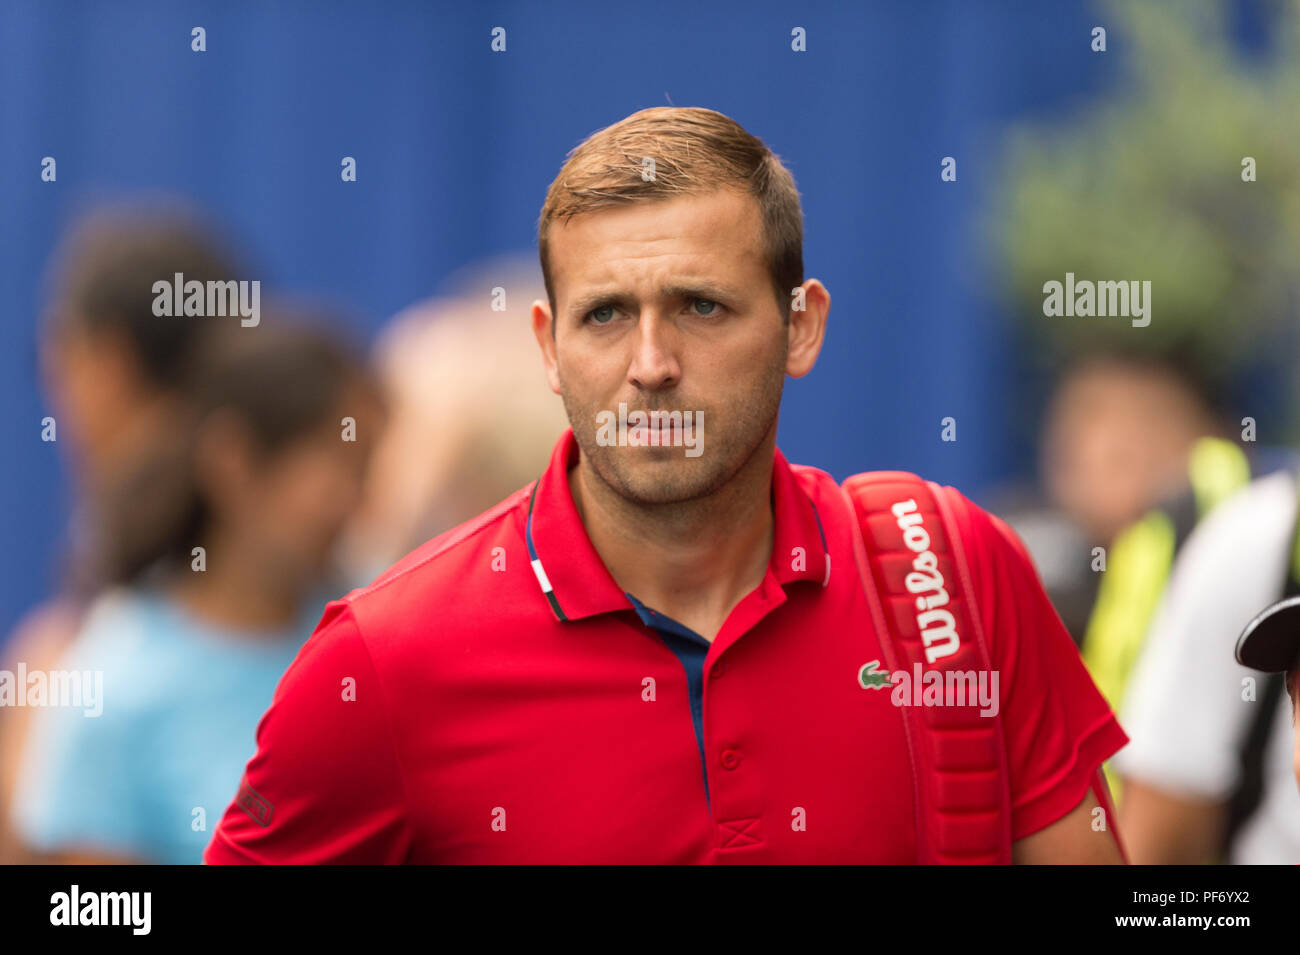 West Vancouver, Canada. 19 August 2018. West Vancouver, Canada. 19 August 2018. Daniel Evans of Great Britain wins the ATP Challenger Tour Mens Singles Final,  against Jason Kubler of Australia. Odlum Brown VanOpen. Hollyburn Country Club.  © Gerry Rousseau/Alamy Live News - Stock Image